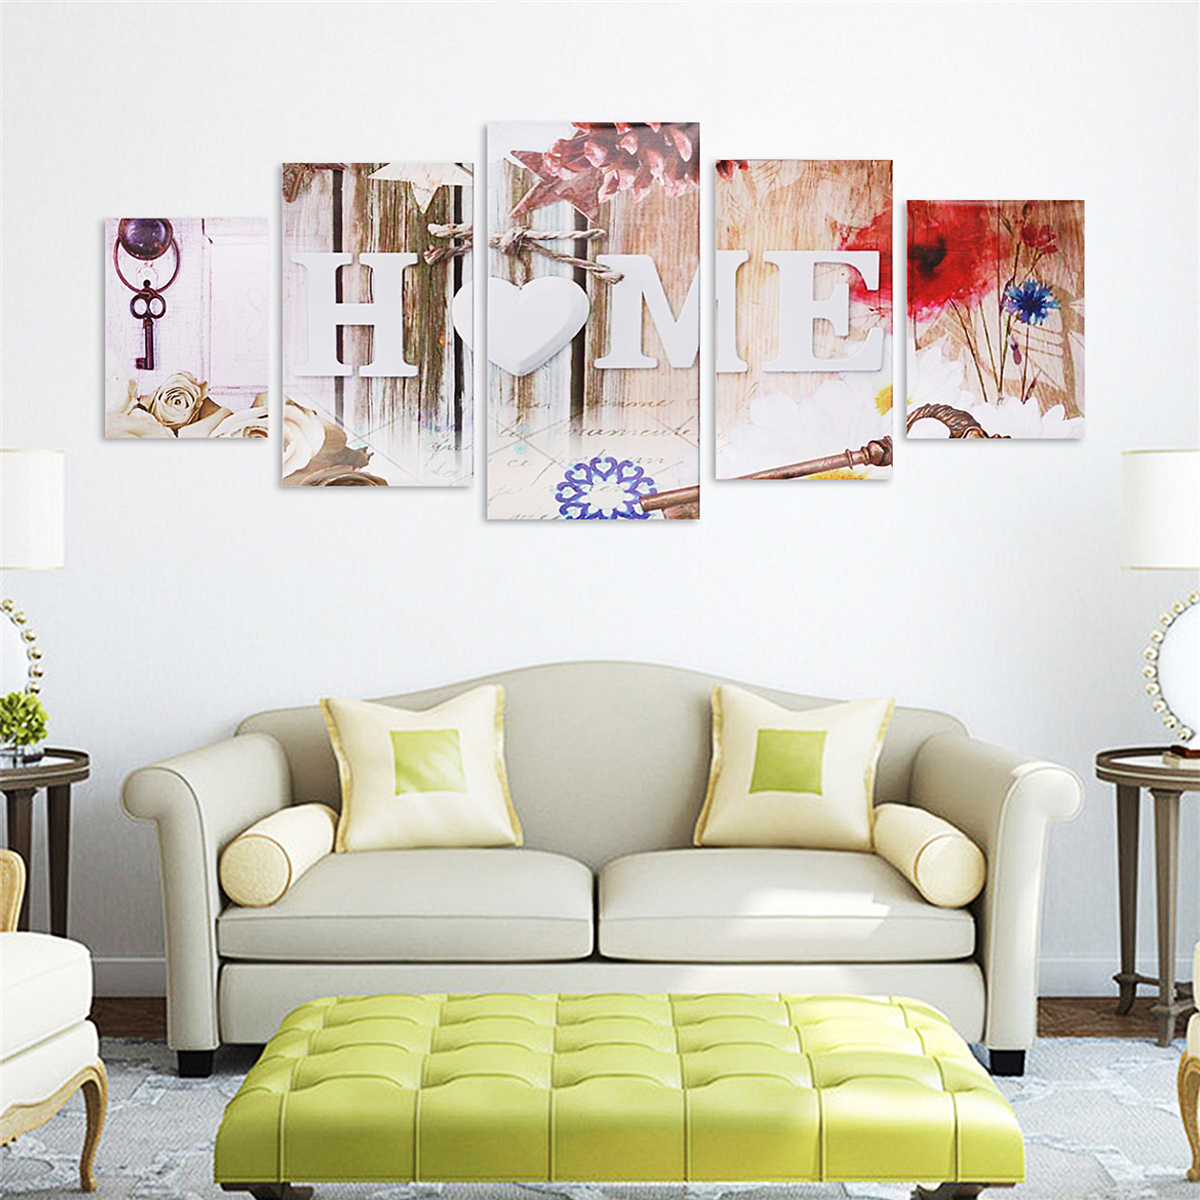 5 Panels Love HOME Wall Art Print Pictures Canvas Wall Art Prints Unframed For Home Decoration